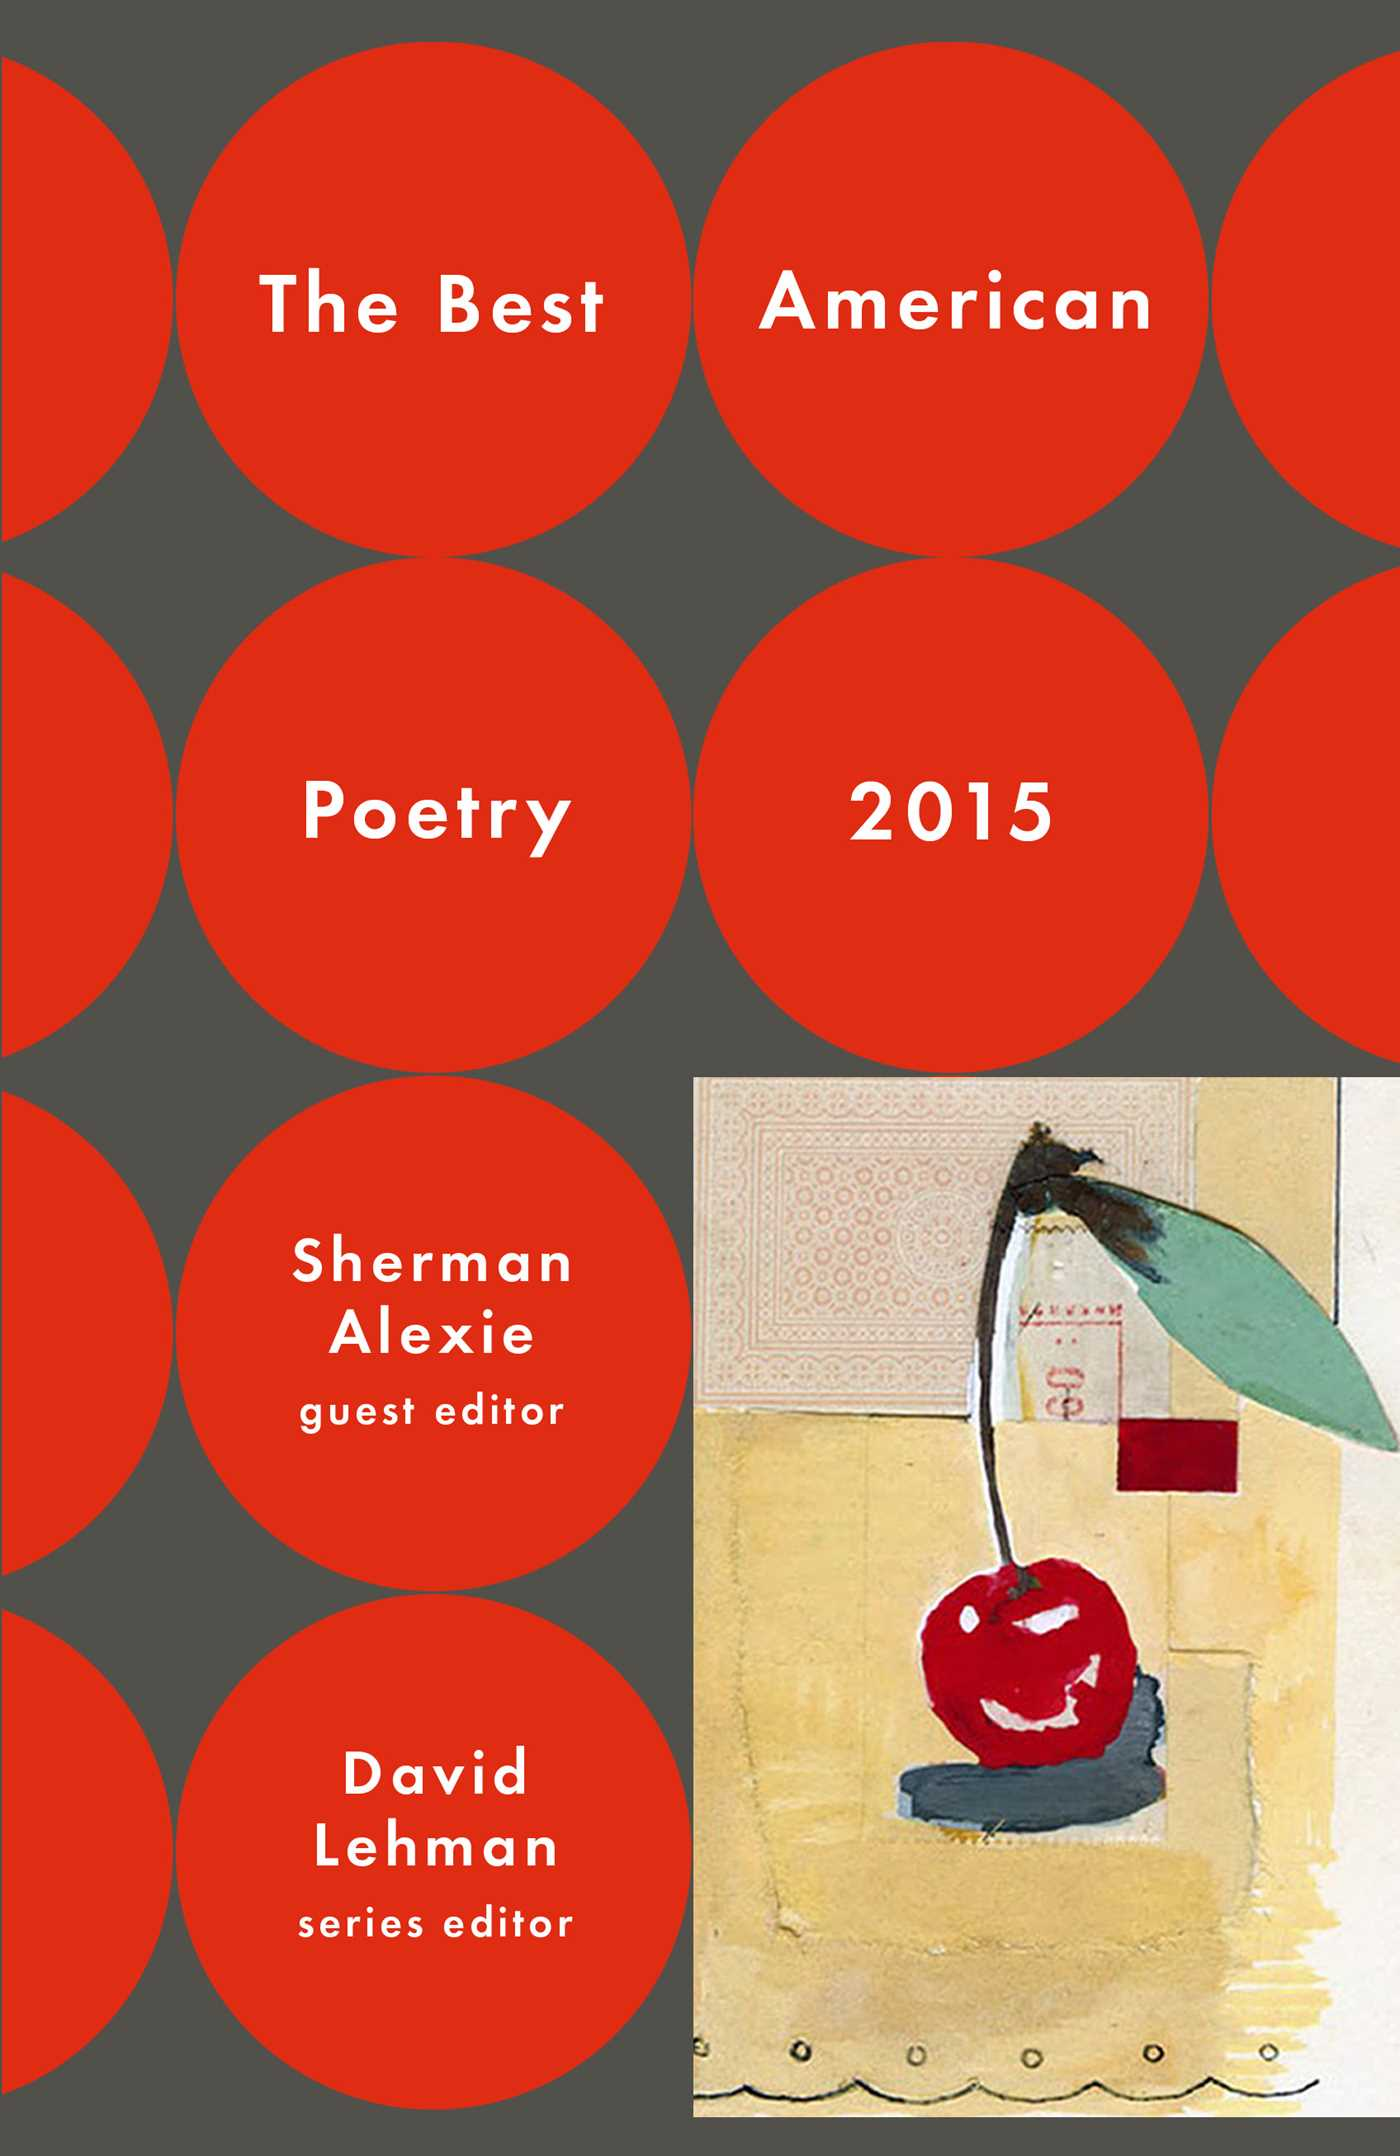 best american poetry 2016 book by david lehman edward hirsch the best american poetry 2015